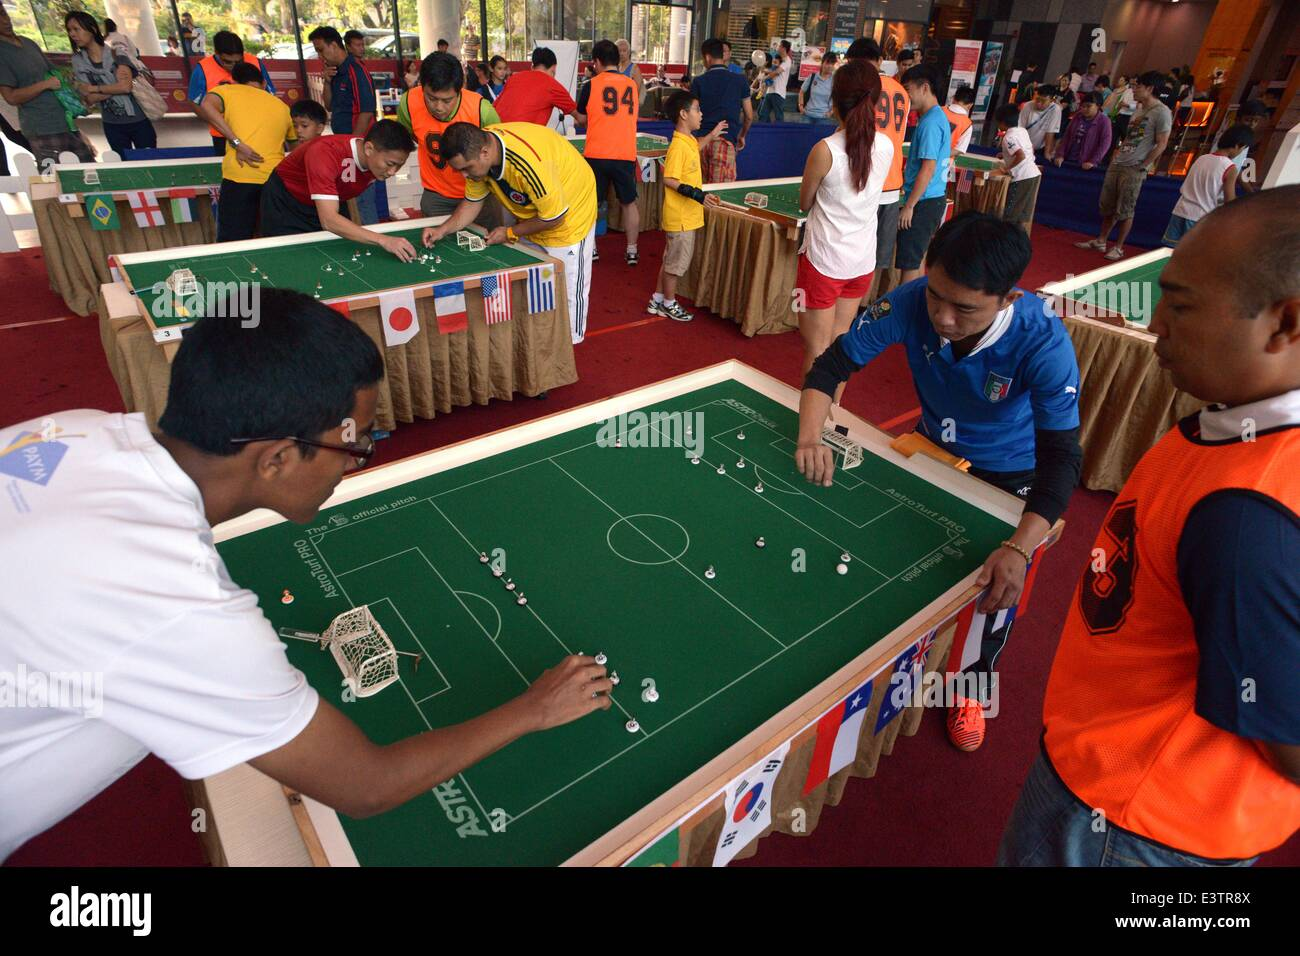 Singapore. 29th June, 2014. Table football enthusiasts participate in the National Championships in Singapore's - Stock Image